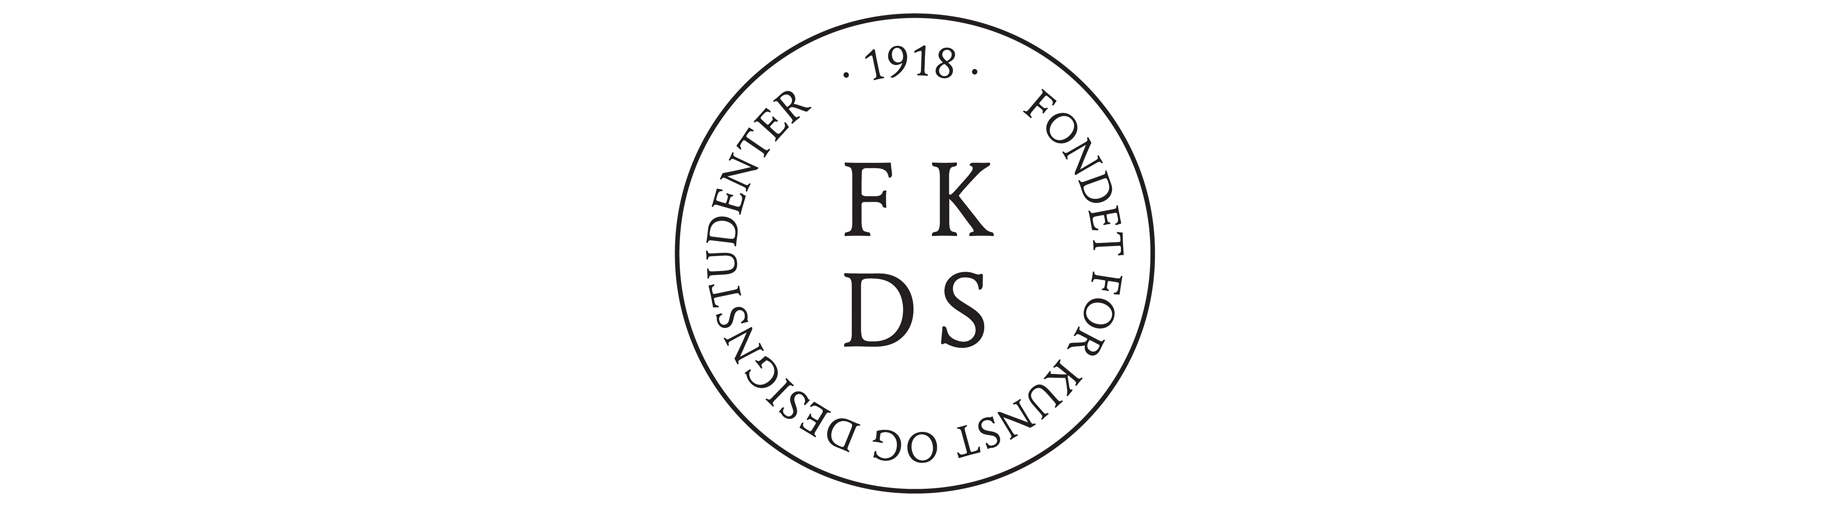 Fondet for Kunst- og Designstudenter